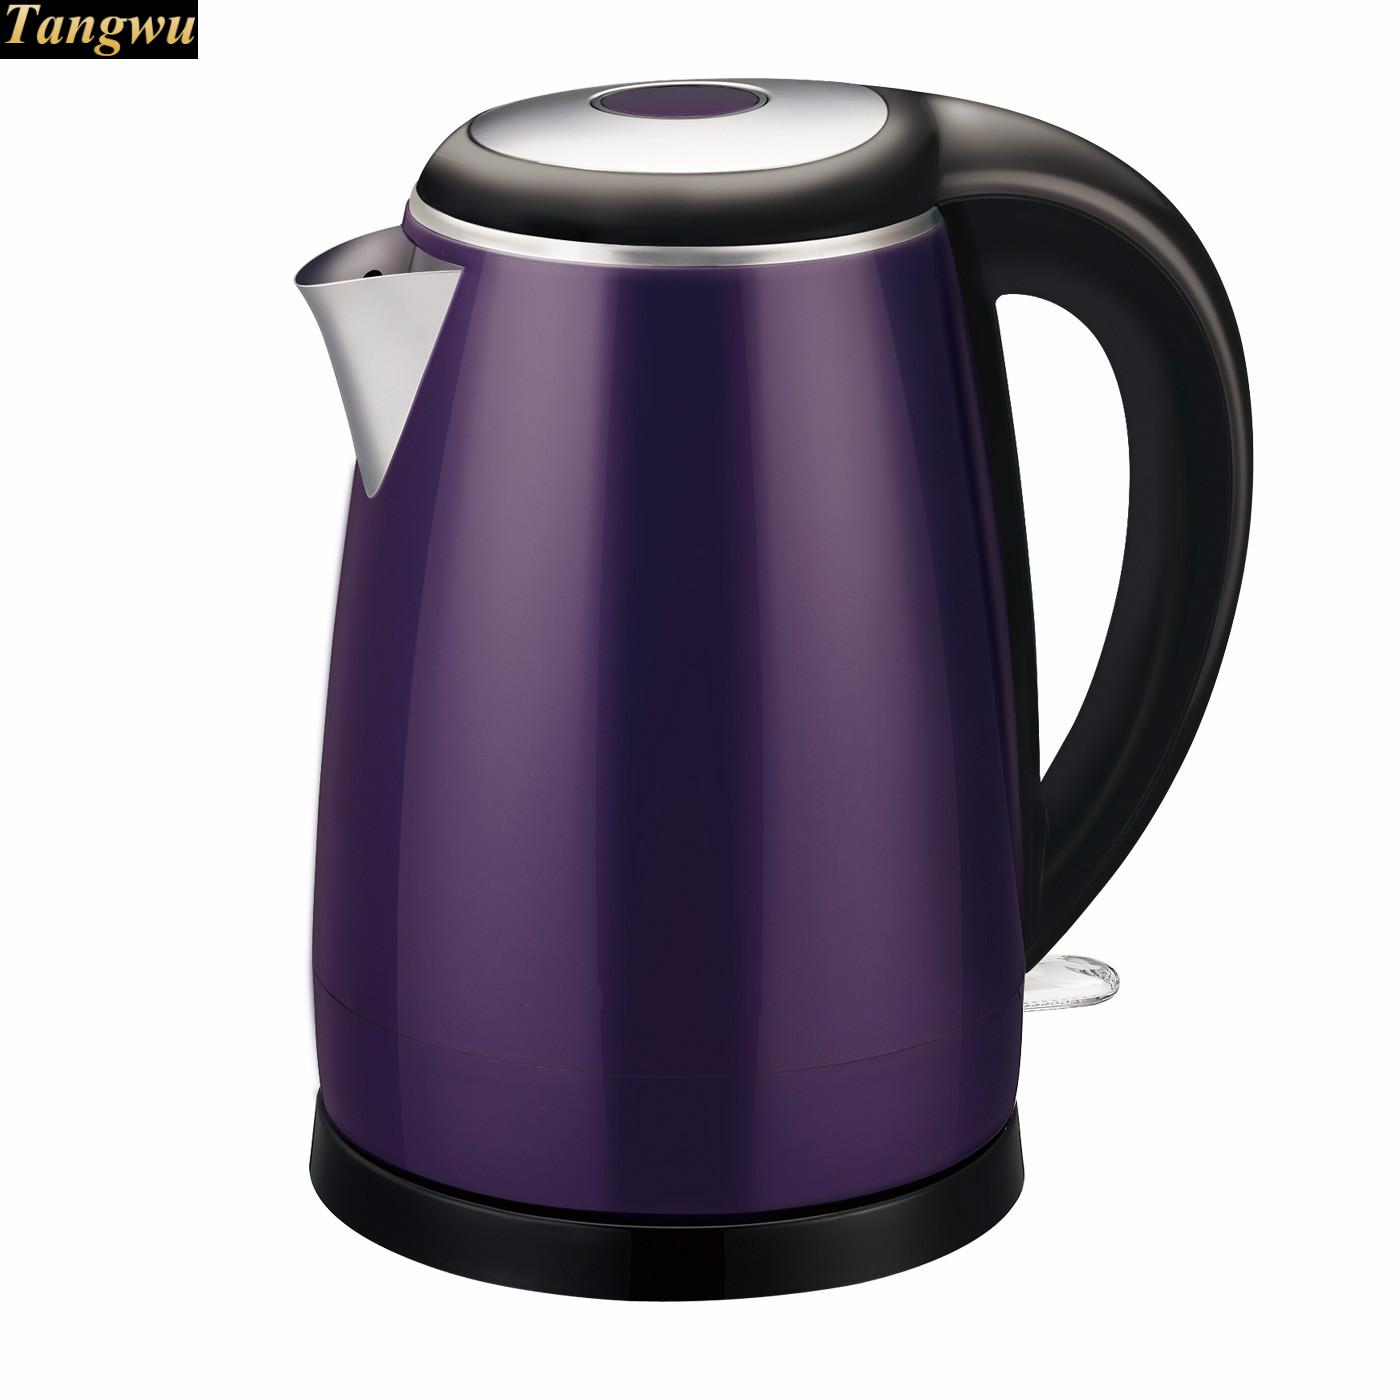 Household electric kettle 304 stainless steel automatic power off cukyi stainless steel 1800w electric kettle household 2l safety auto off function quick heating red gold